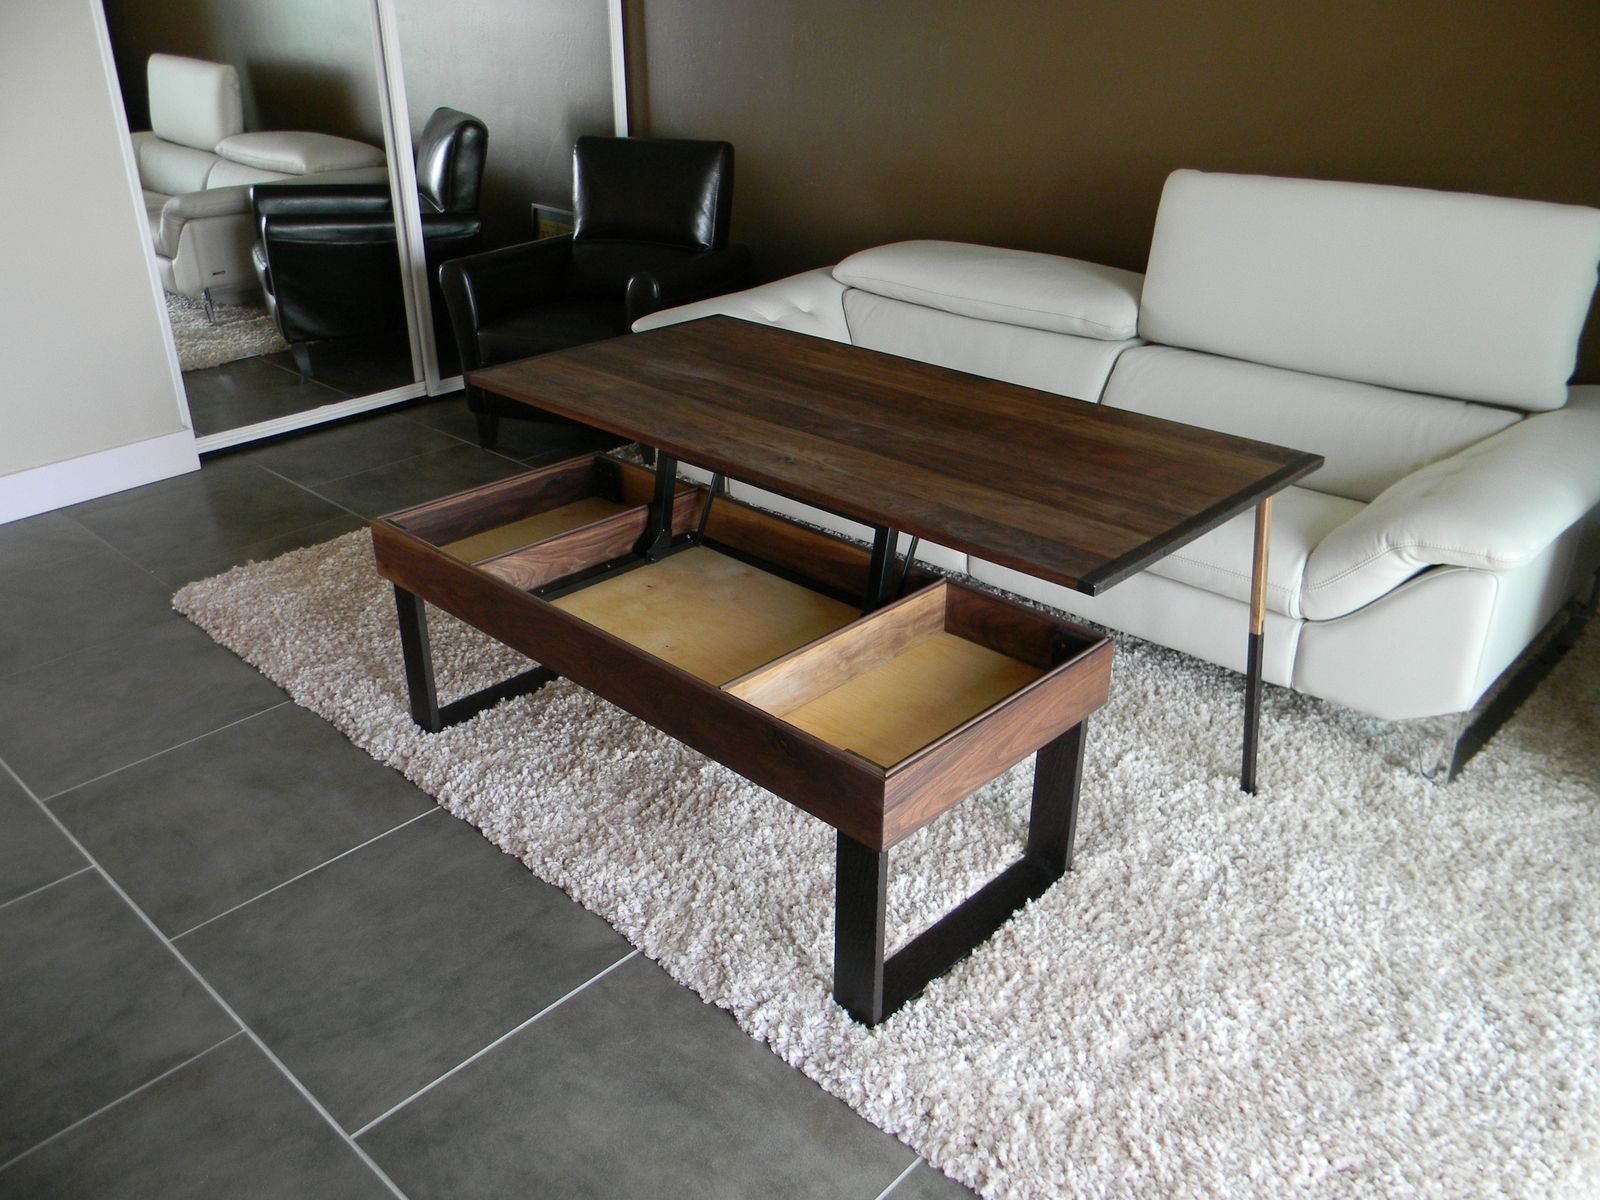 Lift top cocktail table with storage - Hand Made Terry S Lift Top Pop Up Walnut And Wenge Transformer Coffee Table By Antikea Custommade Com